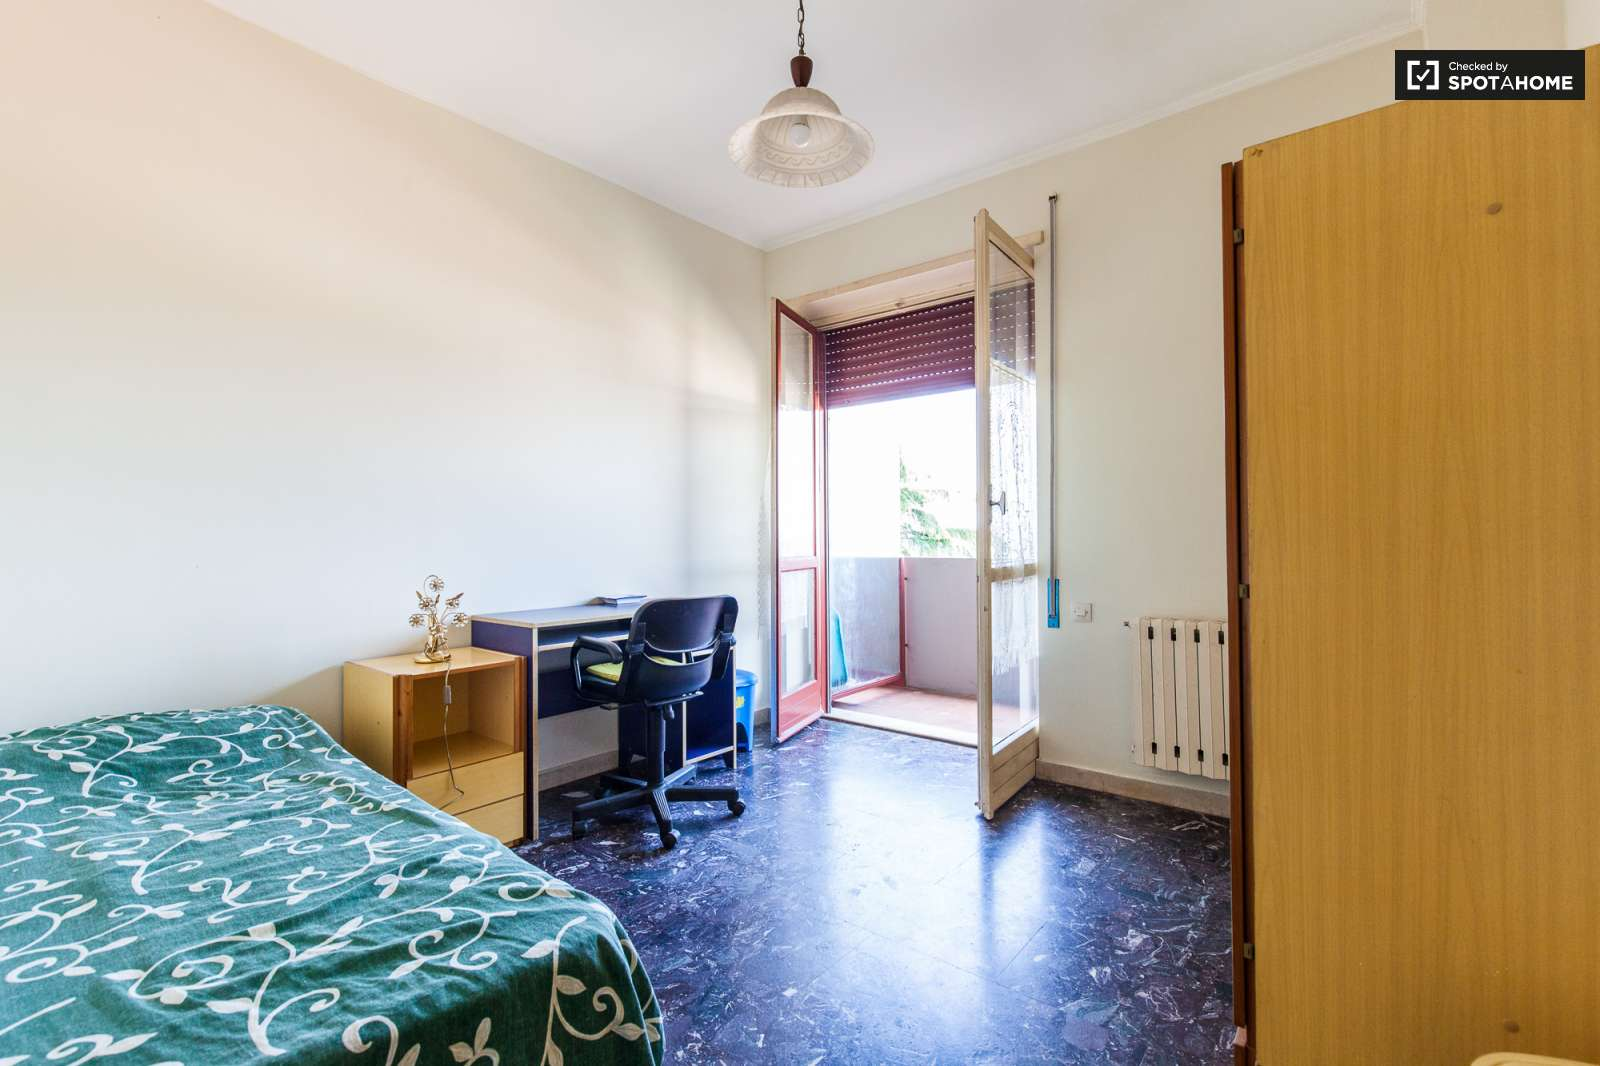 Single Bedroom Suite Room For Rent In A Bright Apartment In Rome Spotahome